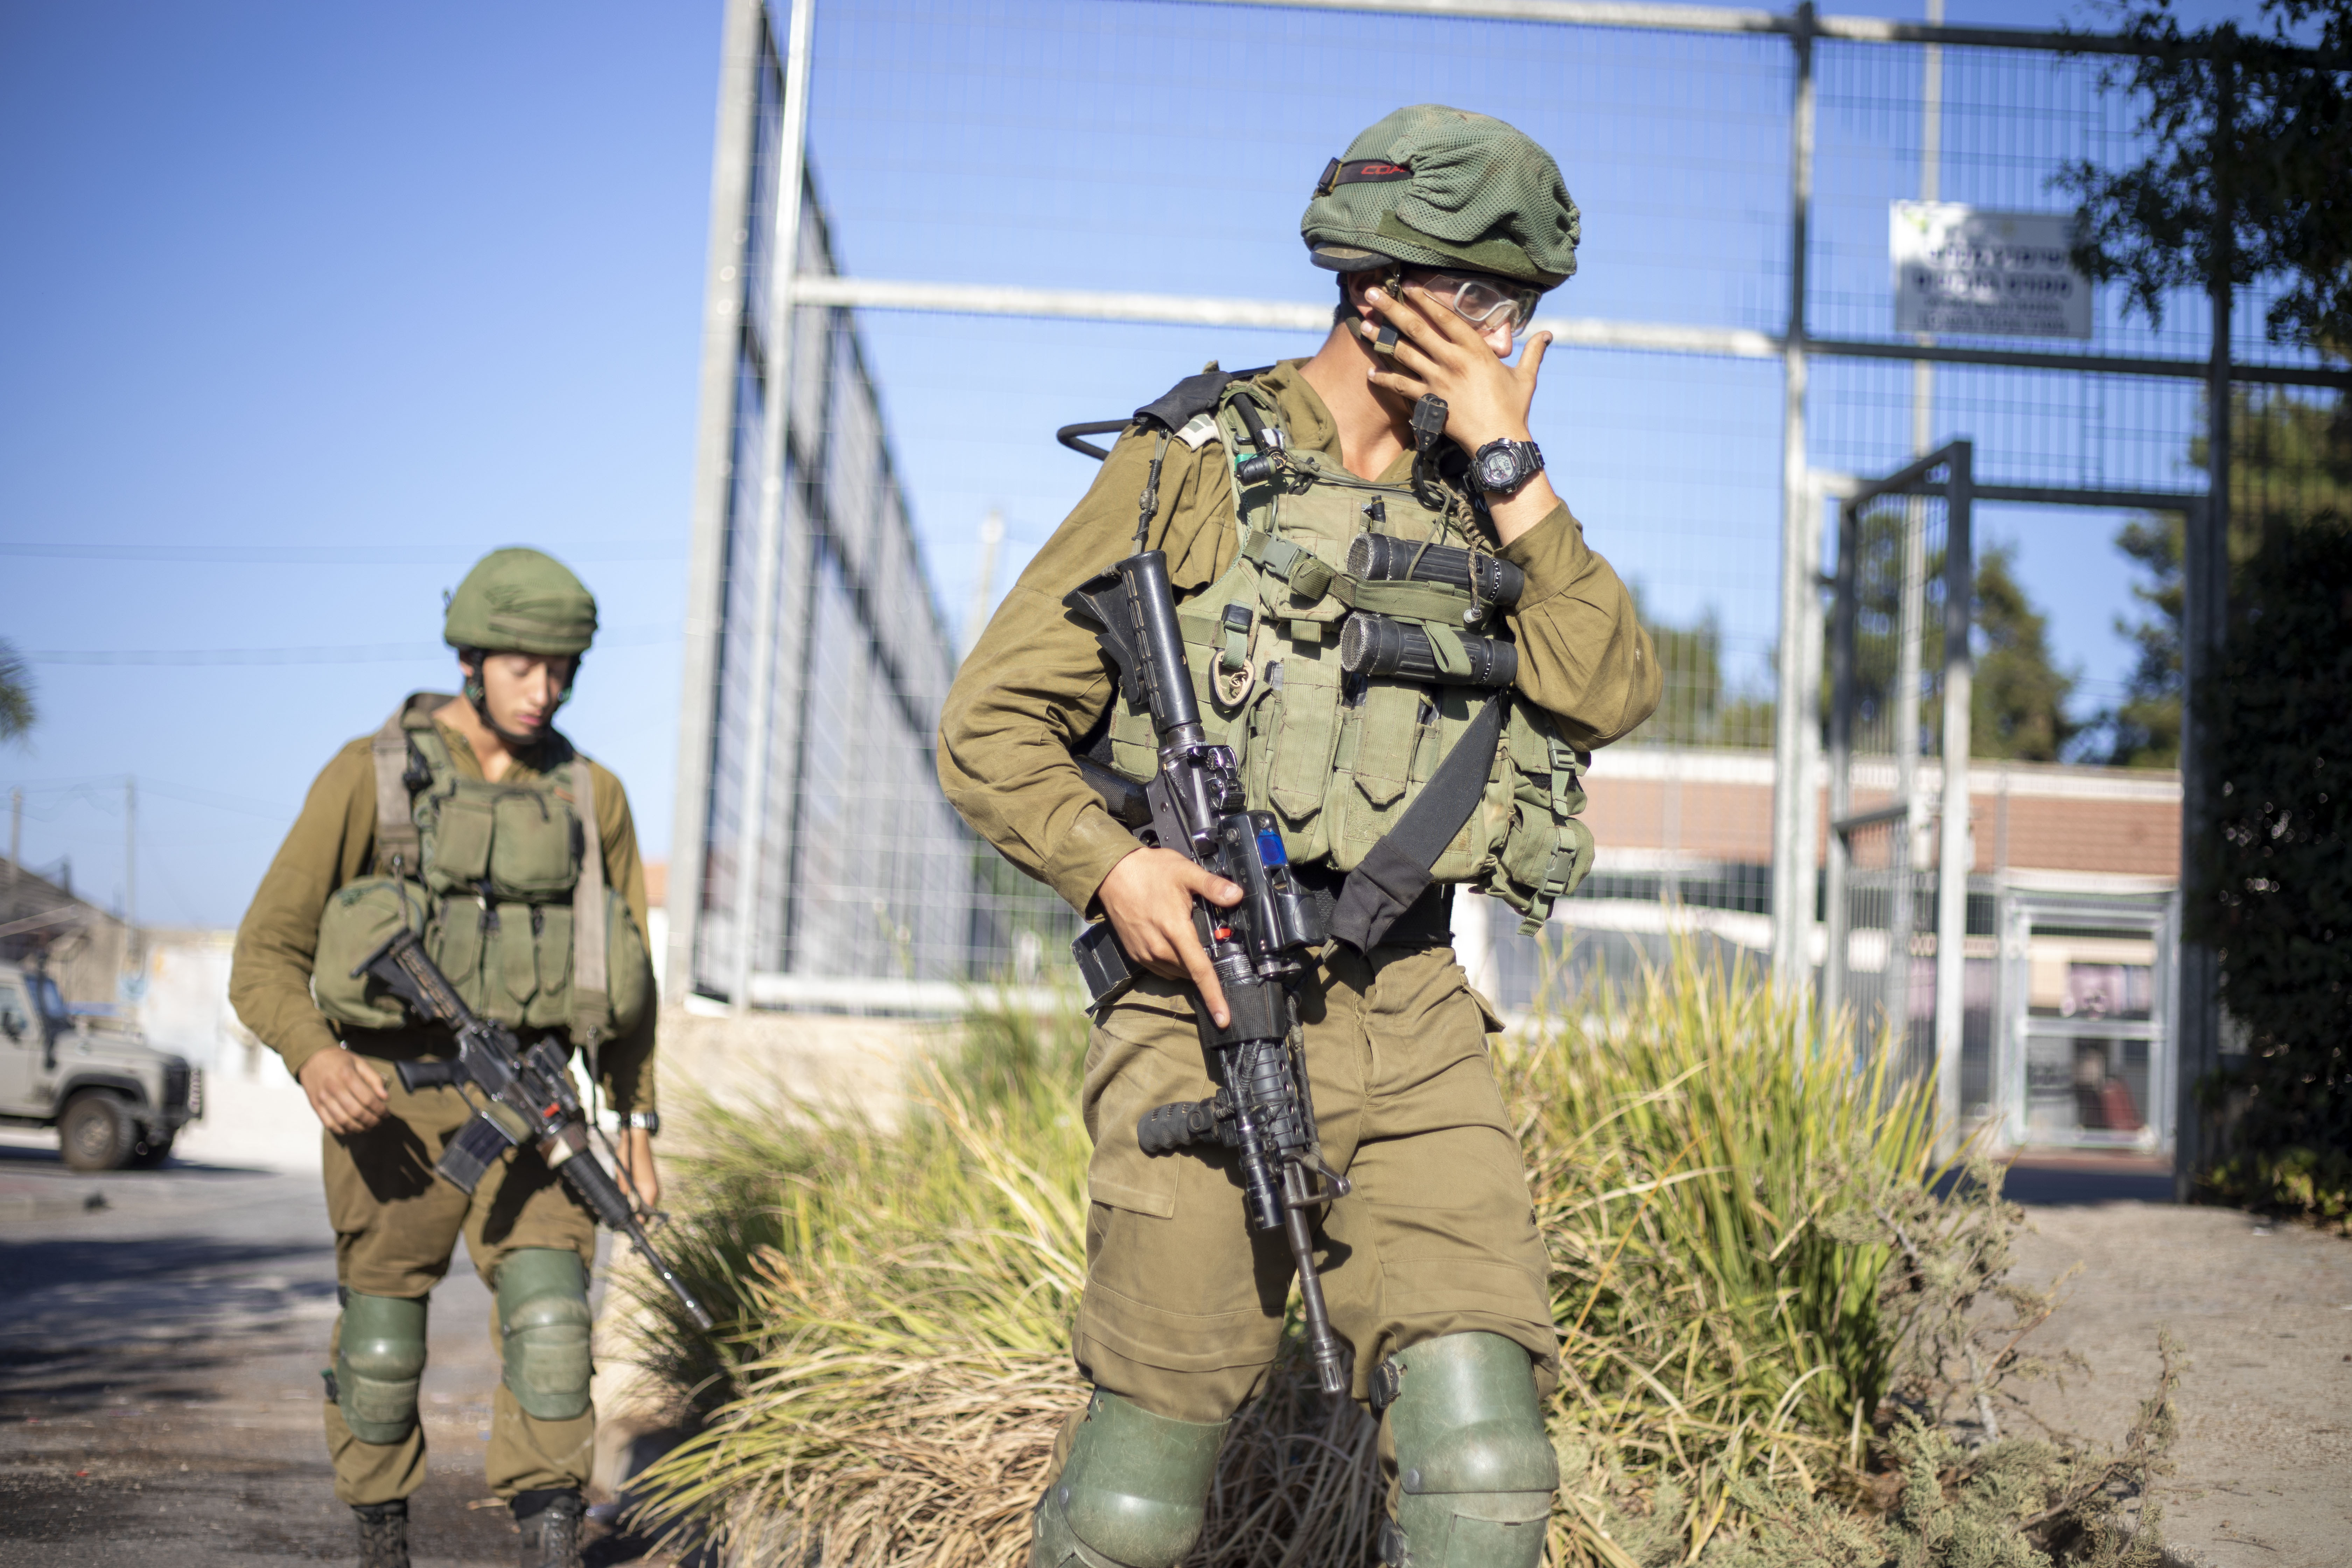 Reports: Israeli army faked casualties in Hezbollah attack